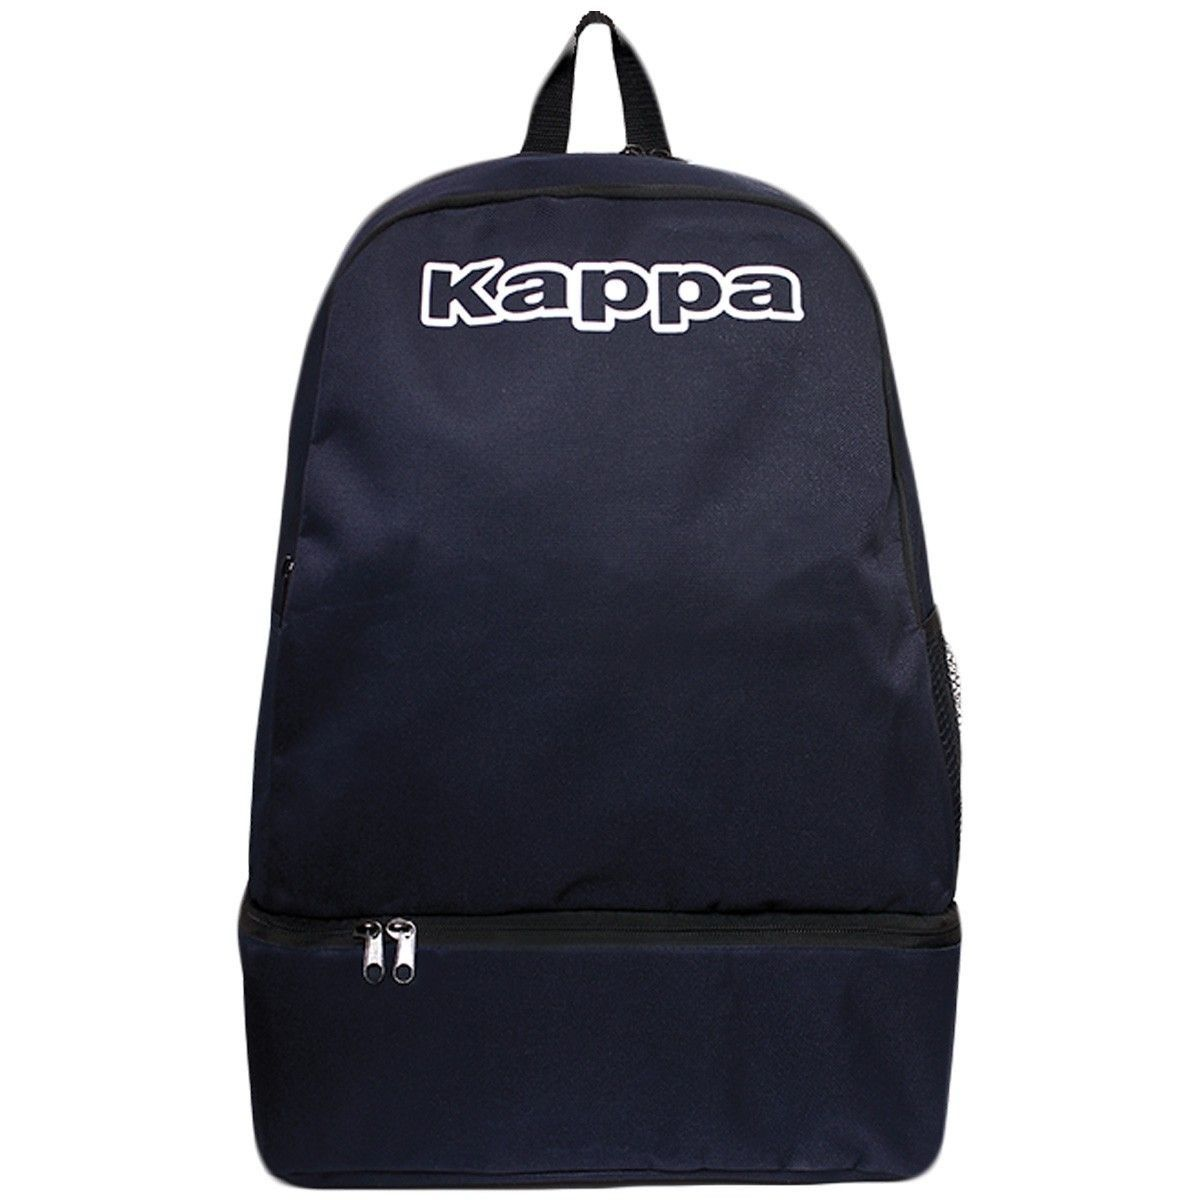 https://www.rclons.fr/wp-content/uploads/2020/10/sac-a-dos-backpack.jpg